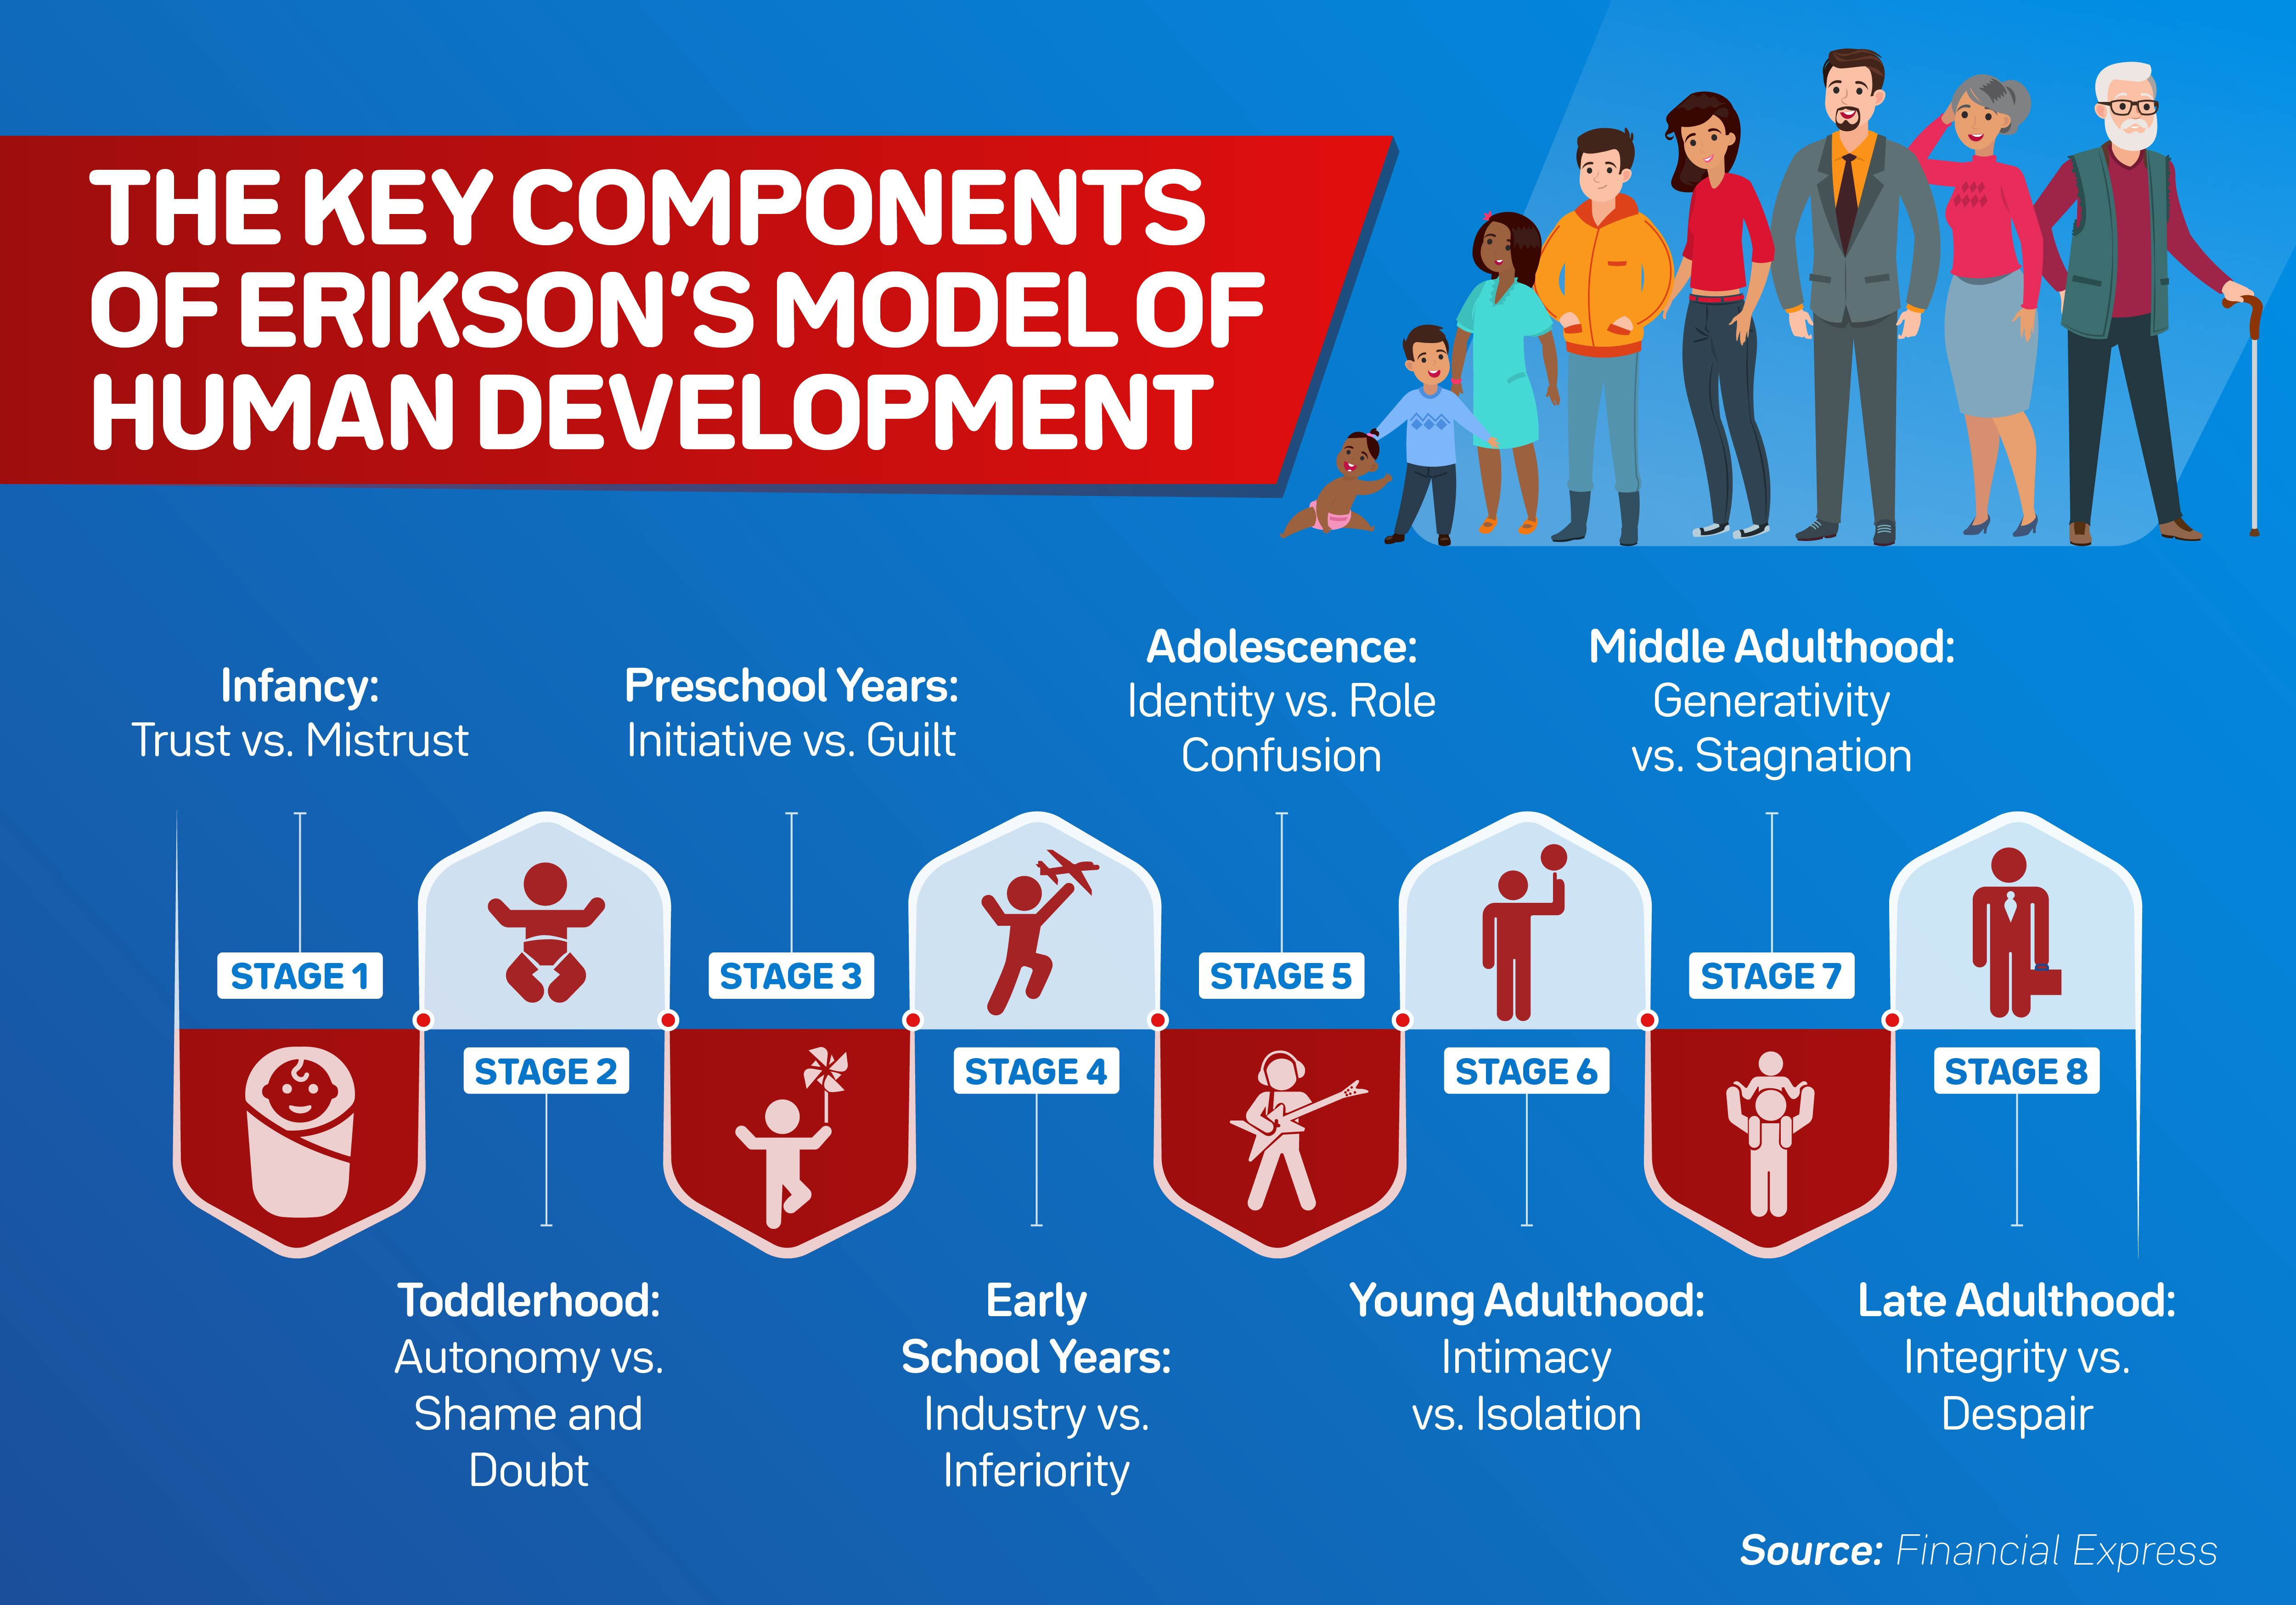 Erik Erikson's eight stages of human development illustrated from left to right